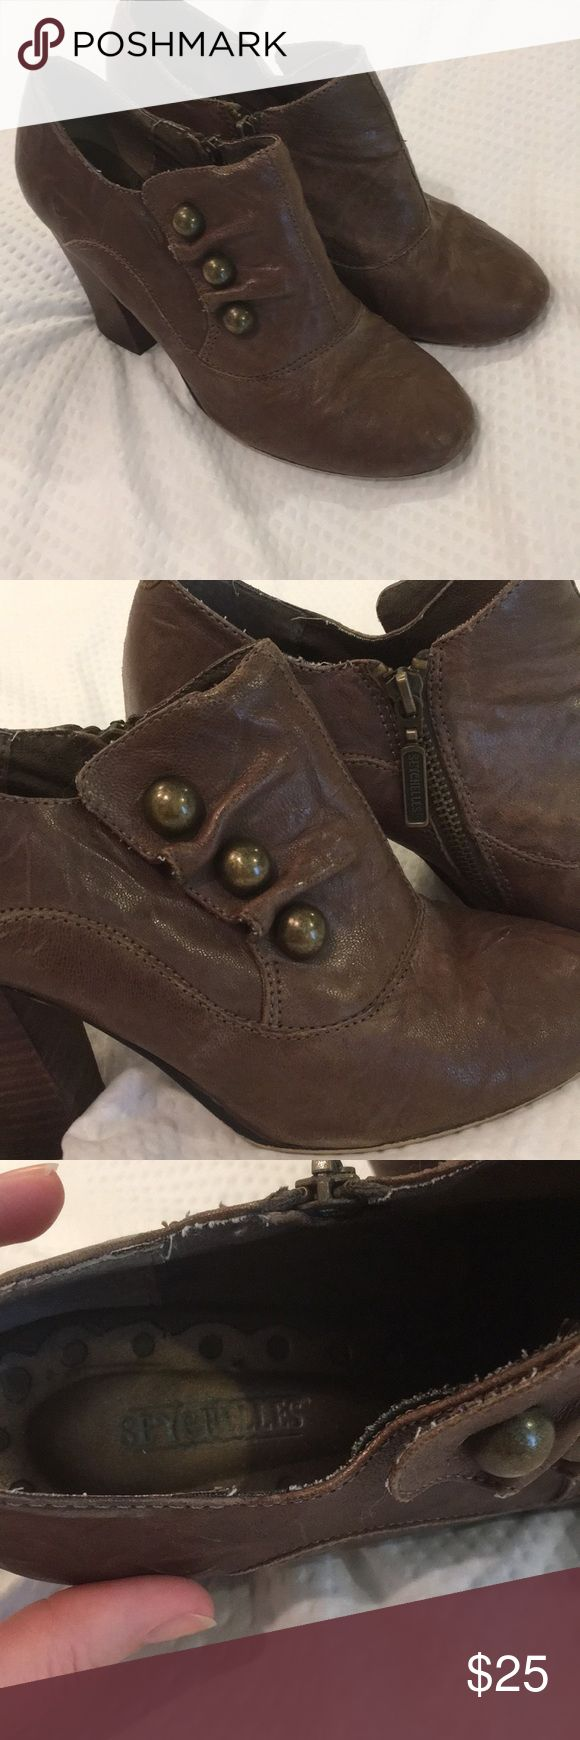 Seychelles perfect brown boots booties 8.5 Seychelles brown leather booties with side zip brass buttons and stacked heel. Size 8 1/2, these run pretty true to size in my opinion maybe slightly generous? See pictures for condition, definitely some scuffs but the patina on these, with the kind of wrinkled leather kind of makes any wear  blend right in! I love the vintage vibe with the brass buttons. Looks good with jeans or skirts and they are comfortable! Make them yours, and check out my…